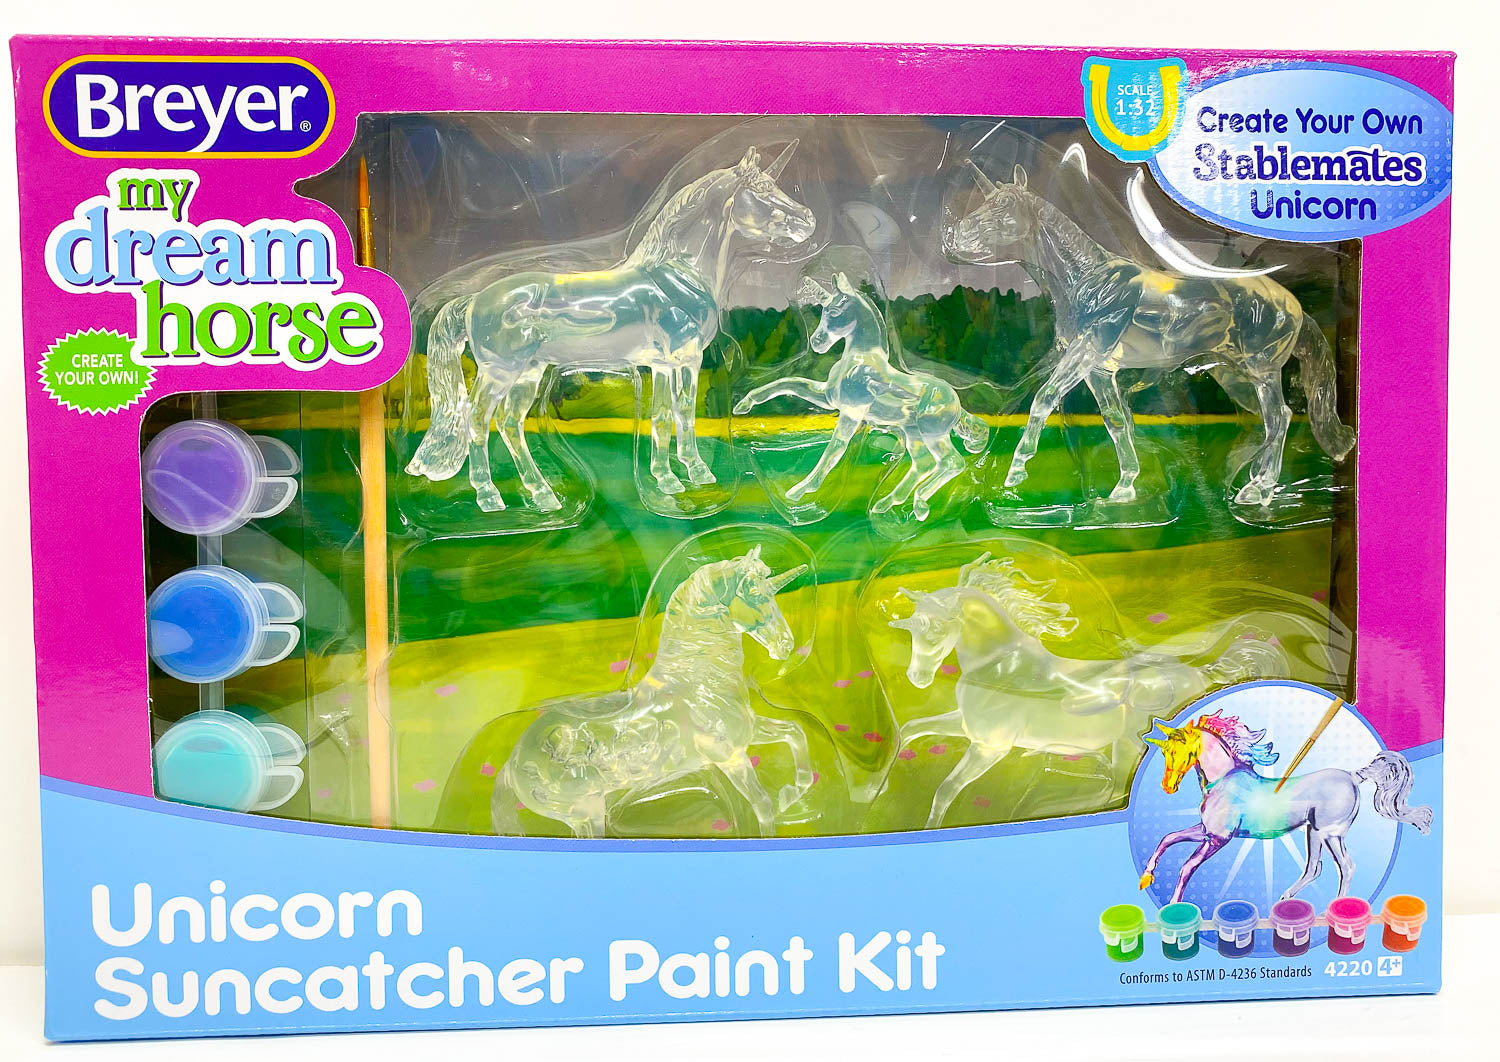 Suncatcher Unicorn Painting Set